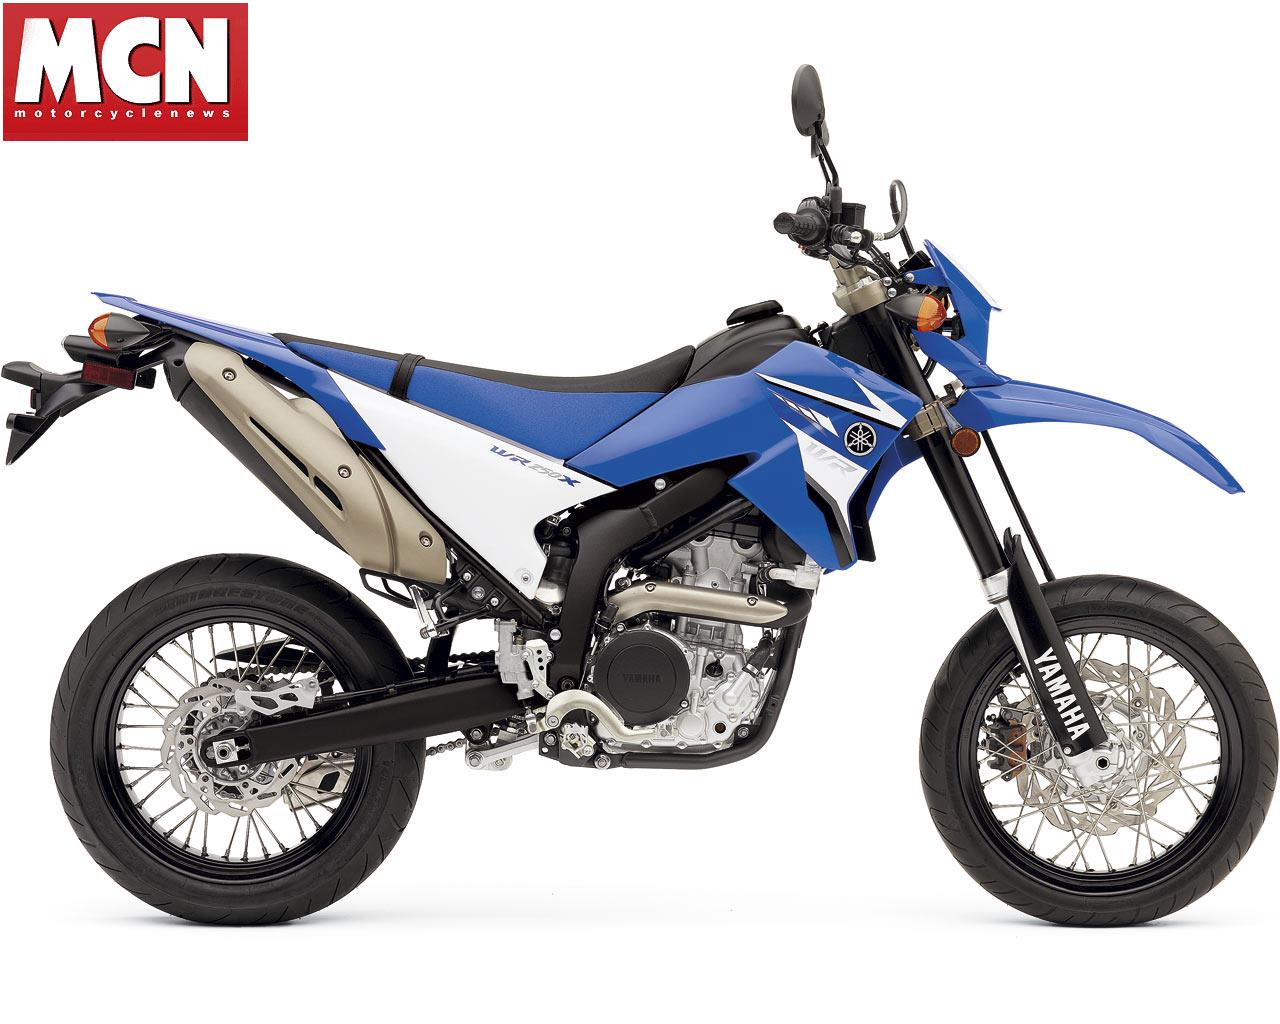 2008 Yamaha WR250R and WR250X off-road and road motorcycle ...